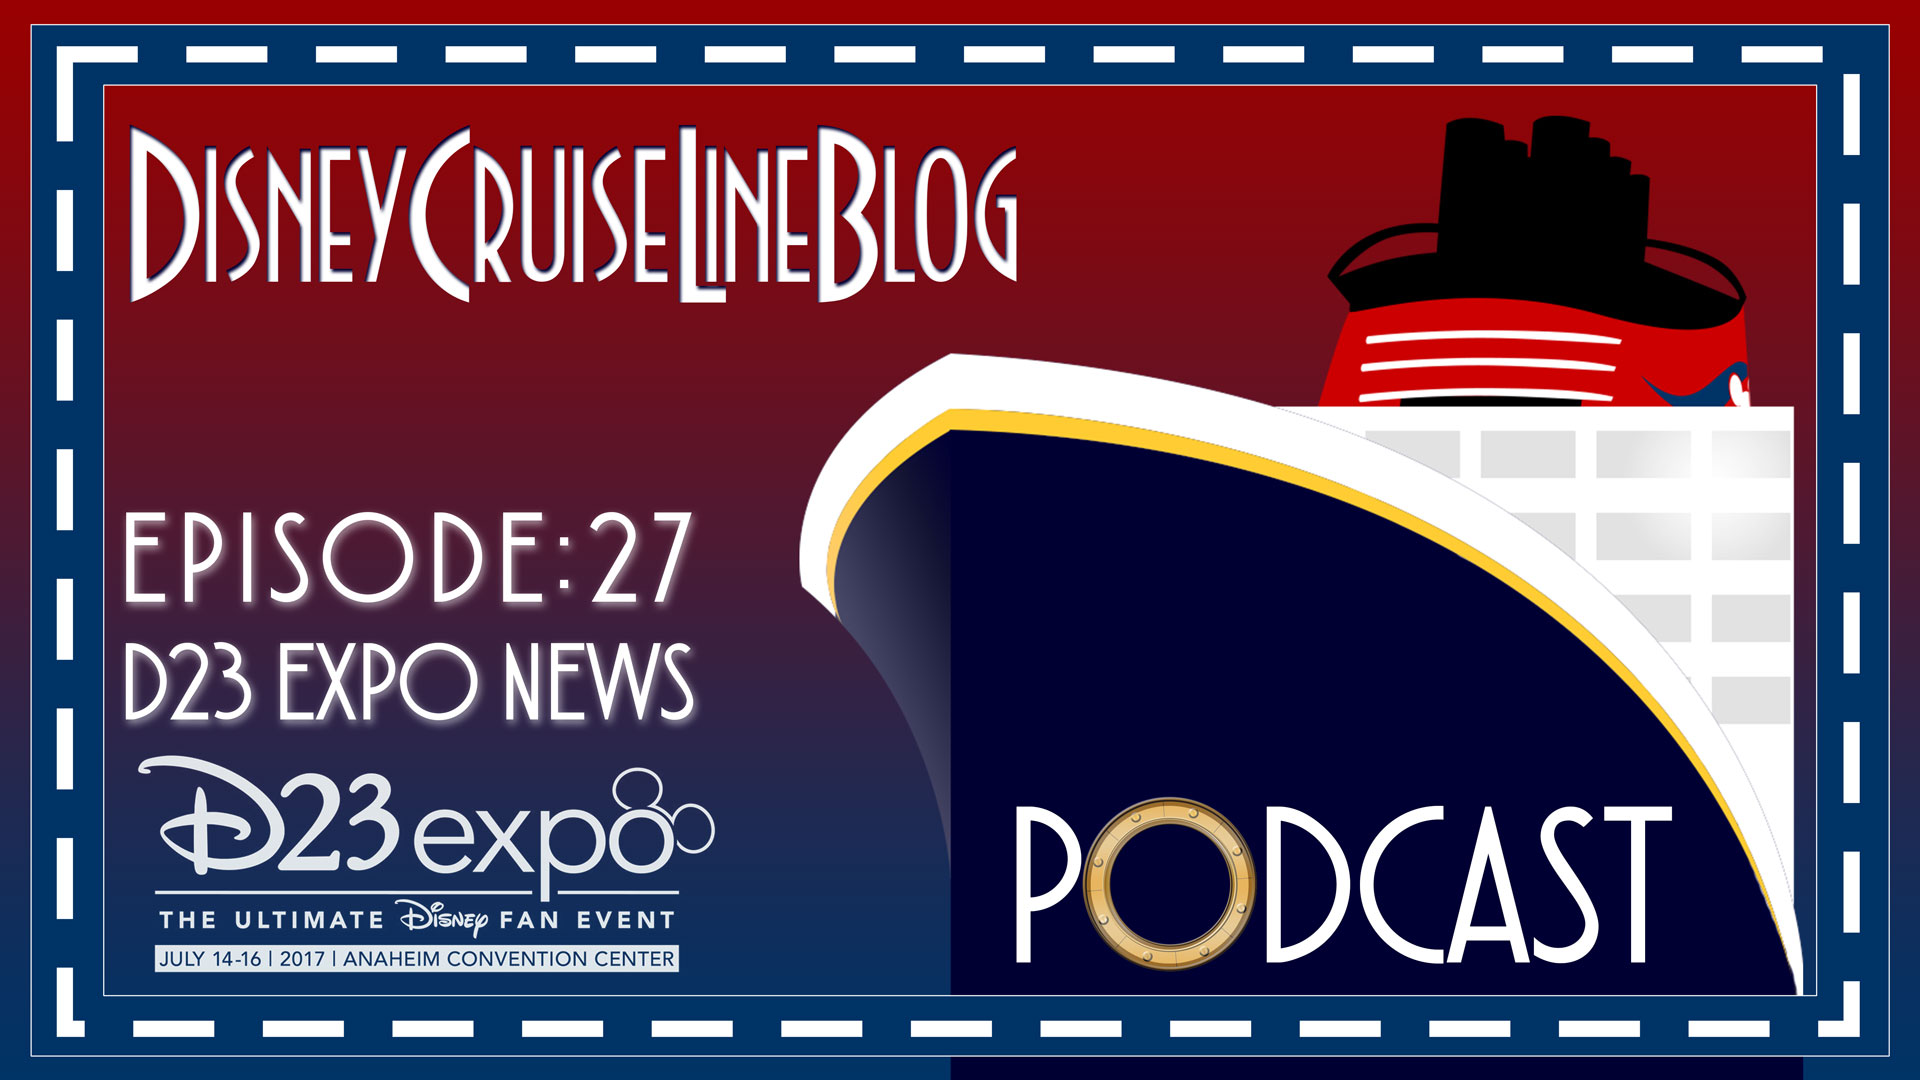 DCL Blog Podcast Episode 27 D23 Expo News 2017